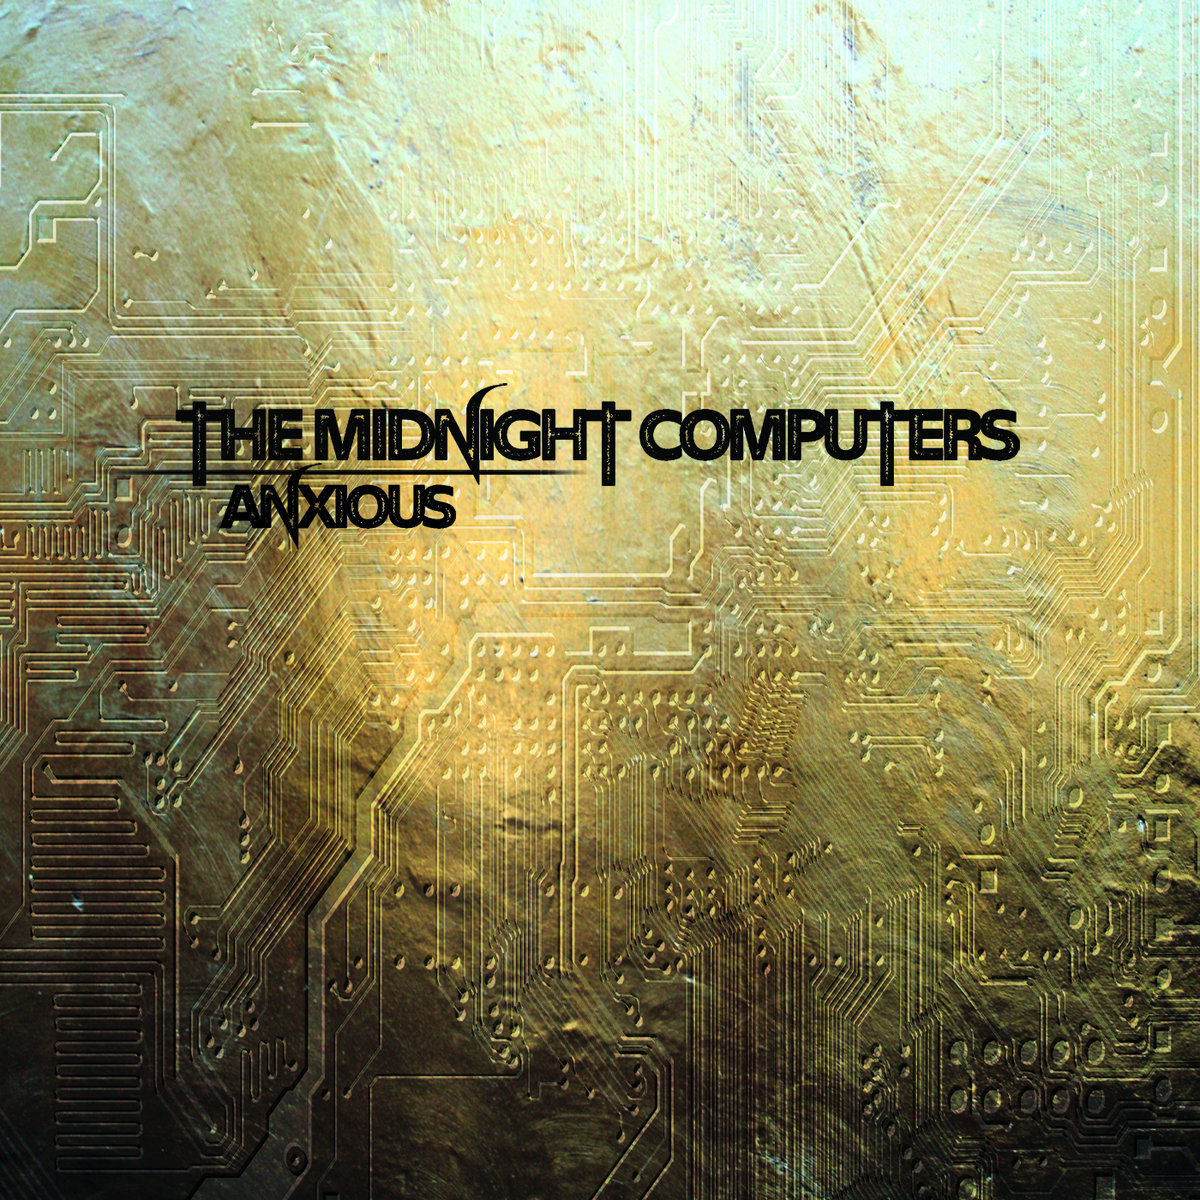 The Midnight Computers cover